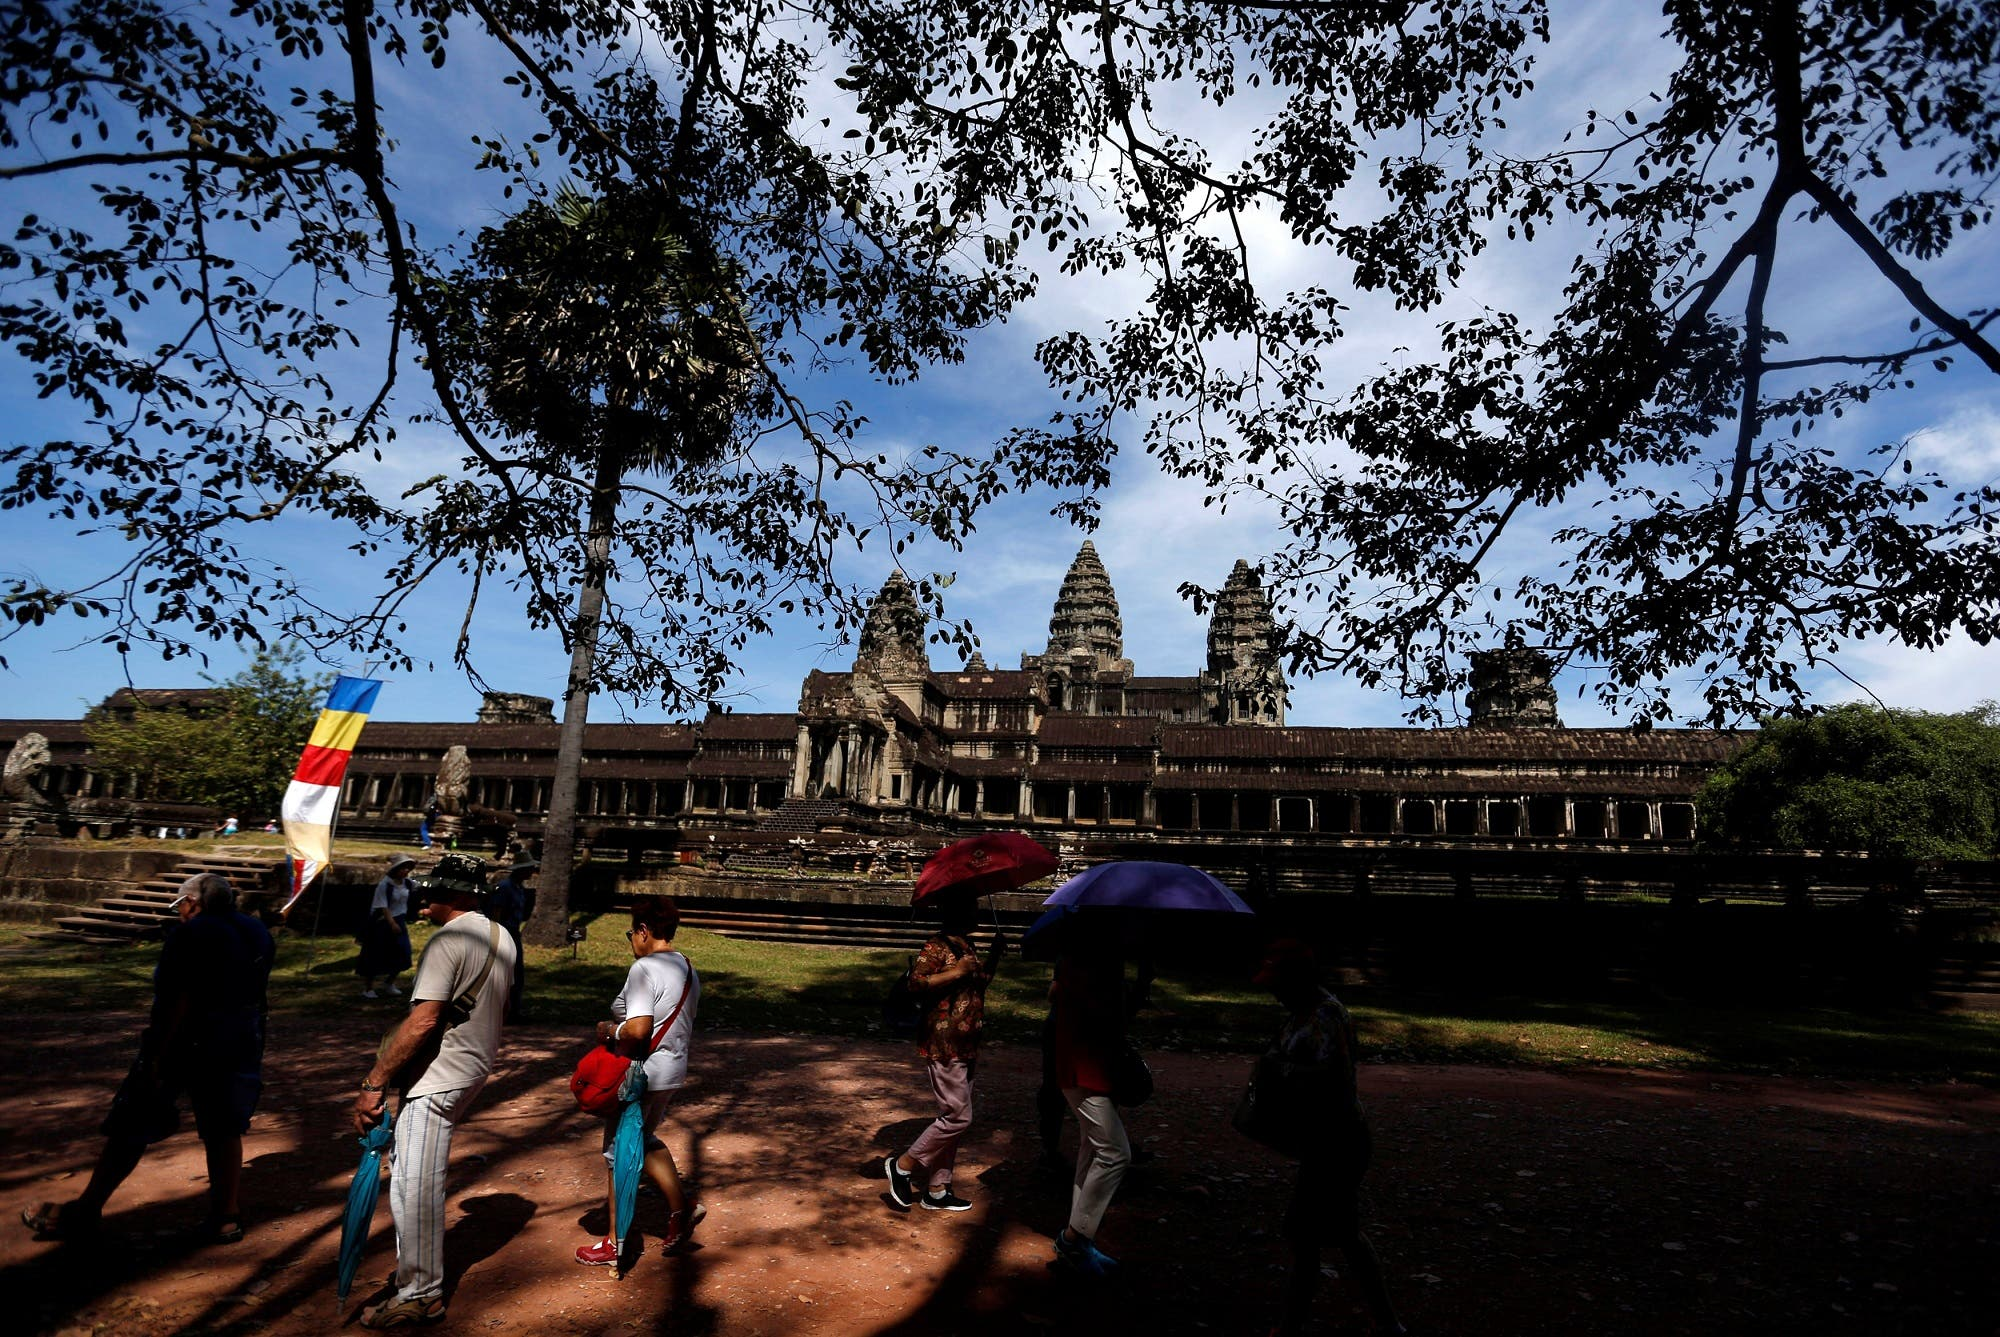 Tourists visit the Angkor Wat temple complex in Siem Reap province, Cambodia, December 2, 2017. (Reuters)